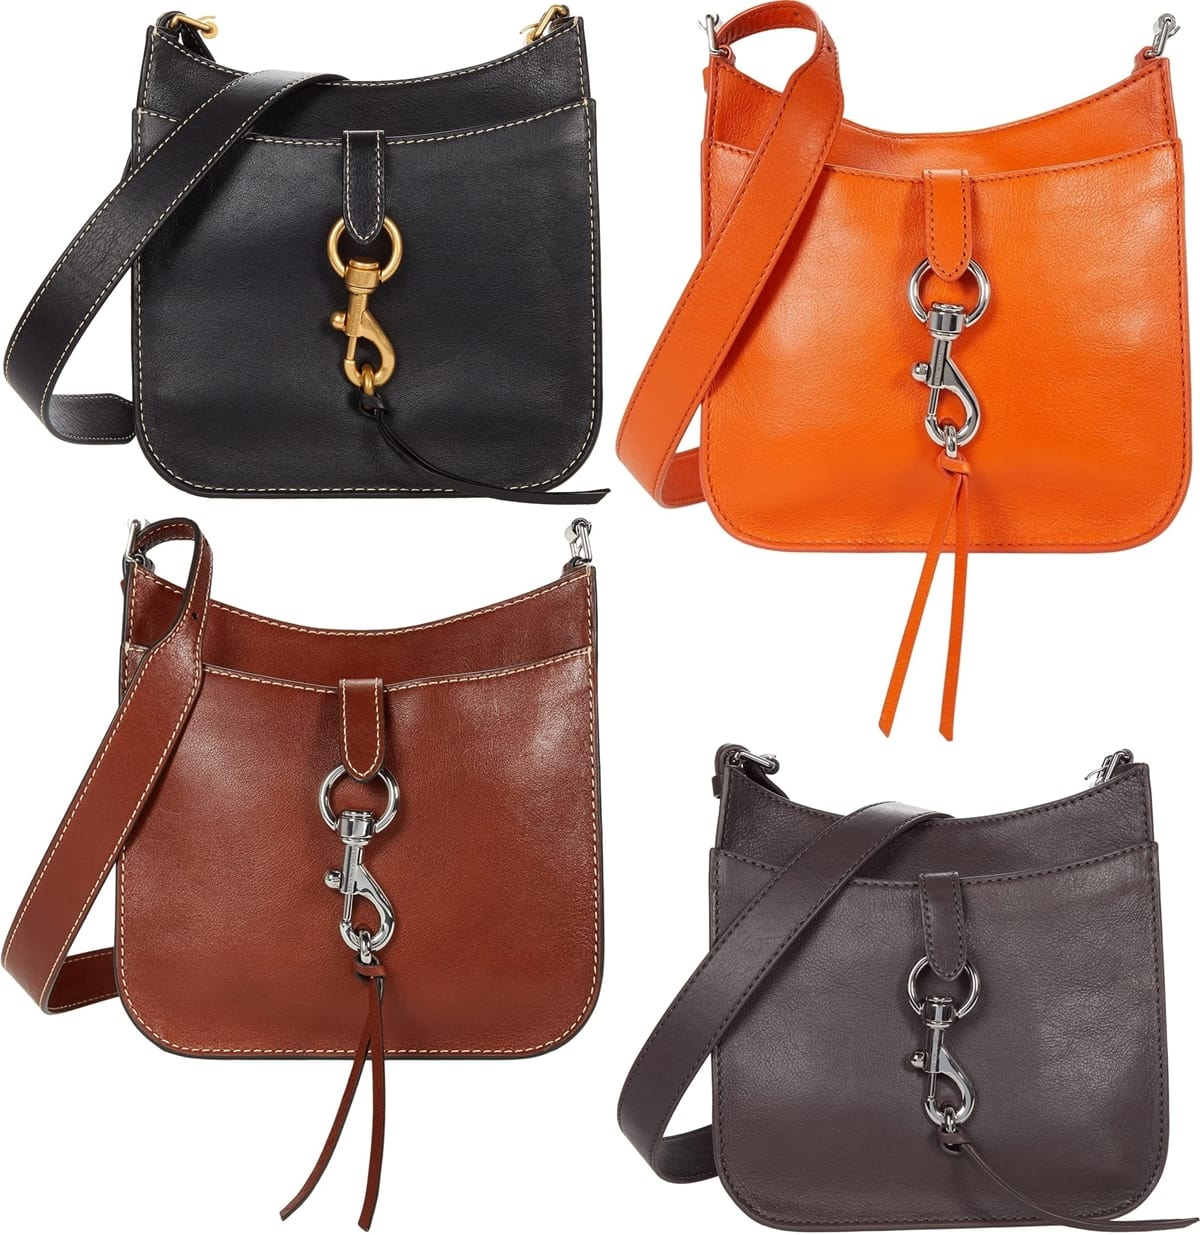 Rebecca Minkoff''s Megan Soft Small Feed Crossbody features metallic hardware closures that keep everything safe